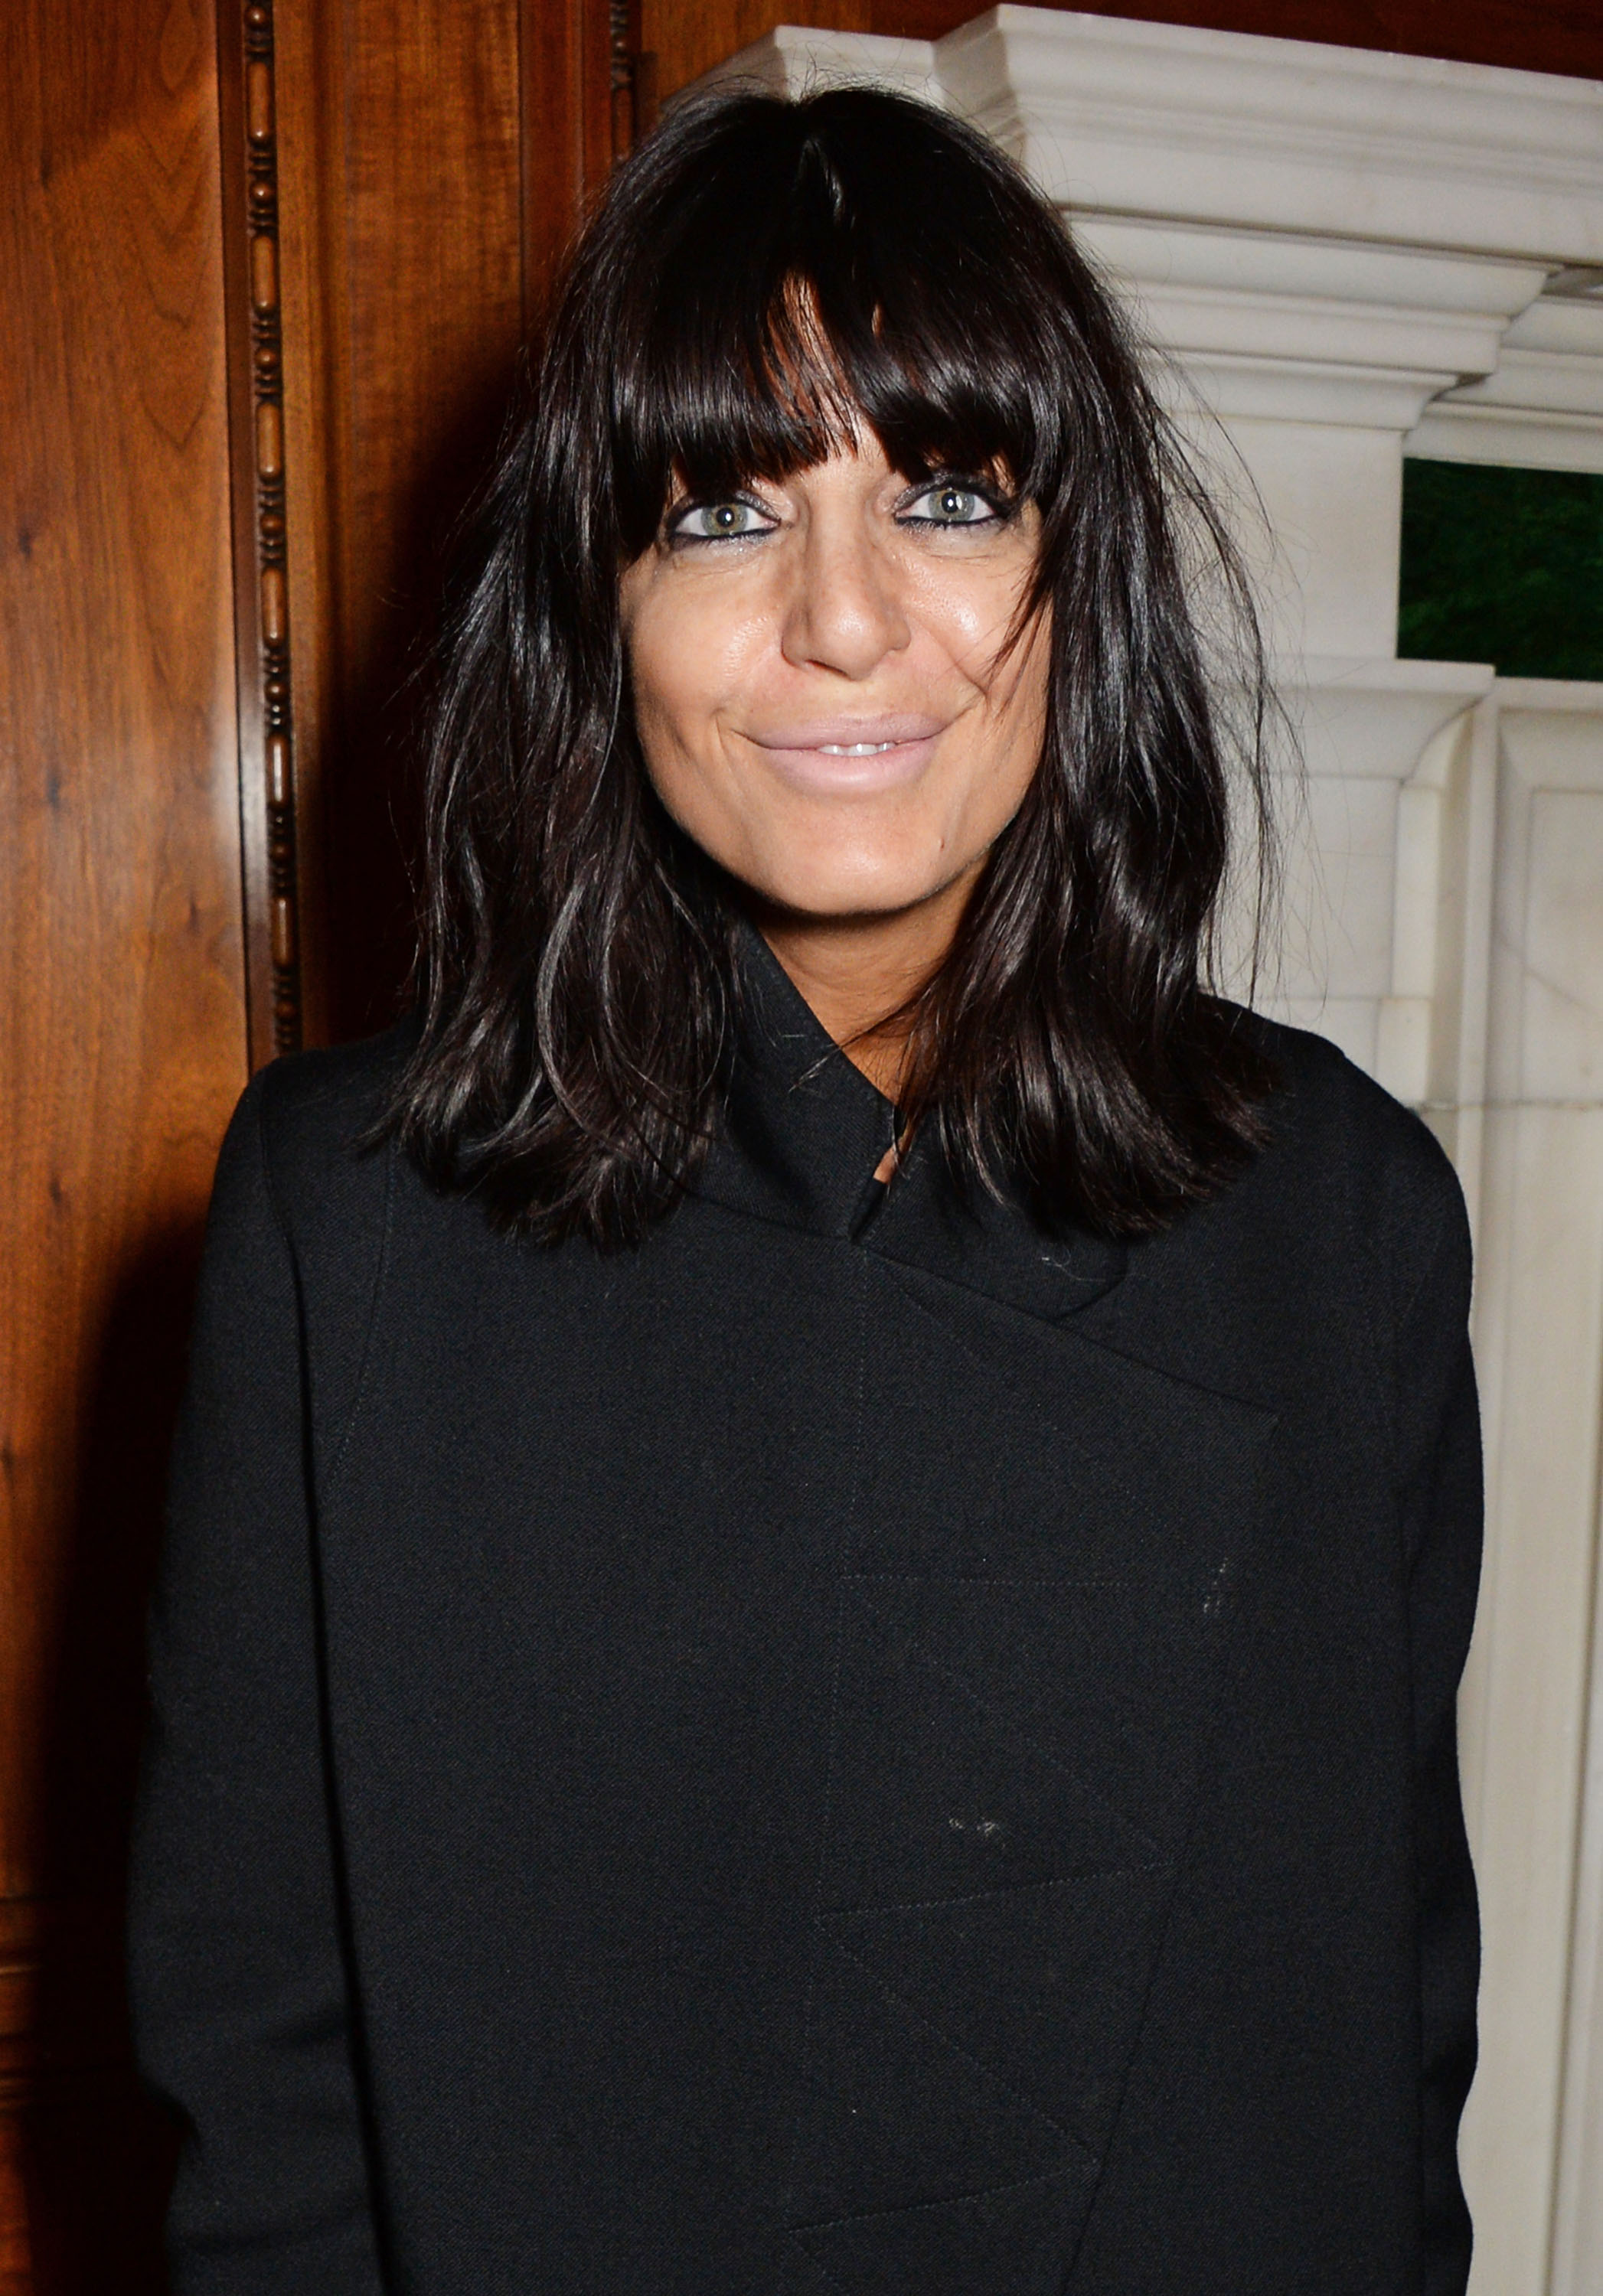 Oscar's Book Prize 2017 judge Claudia Winkleman. (Photo: Dave Benett)